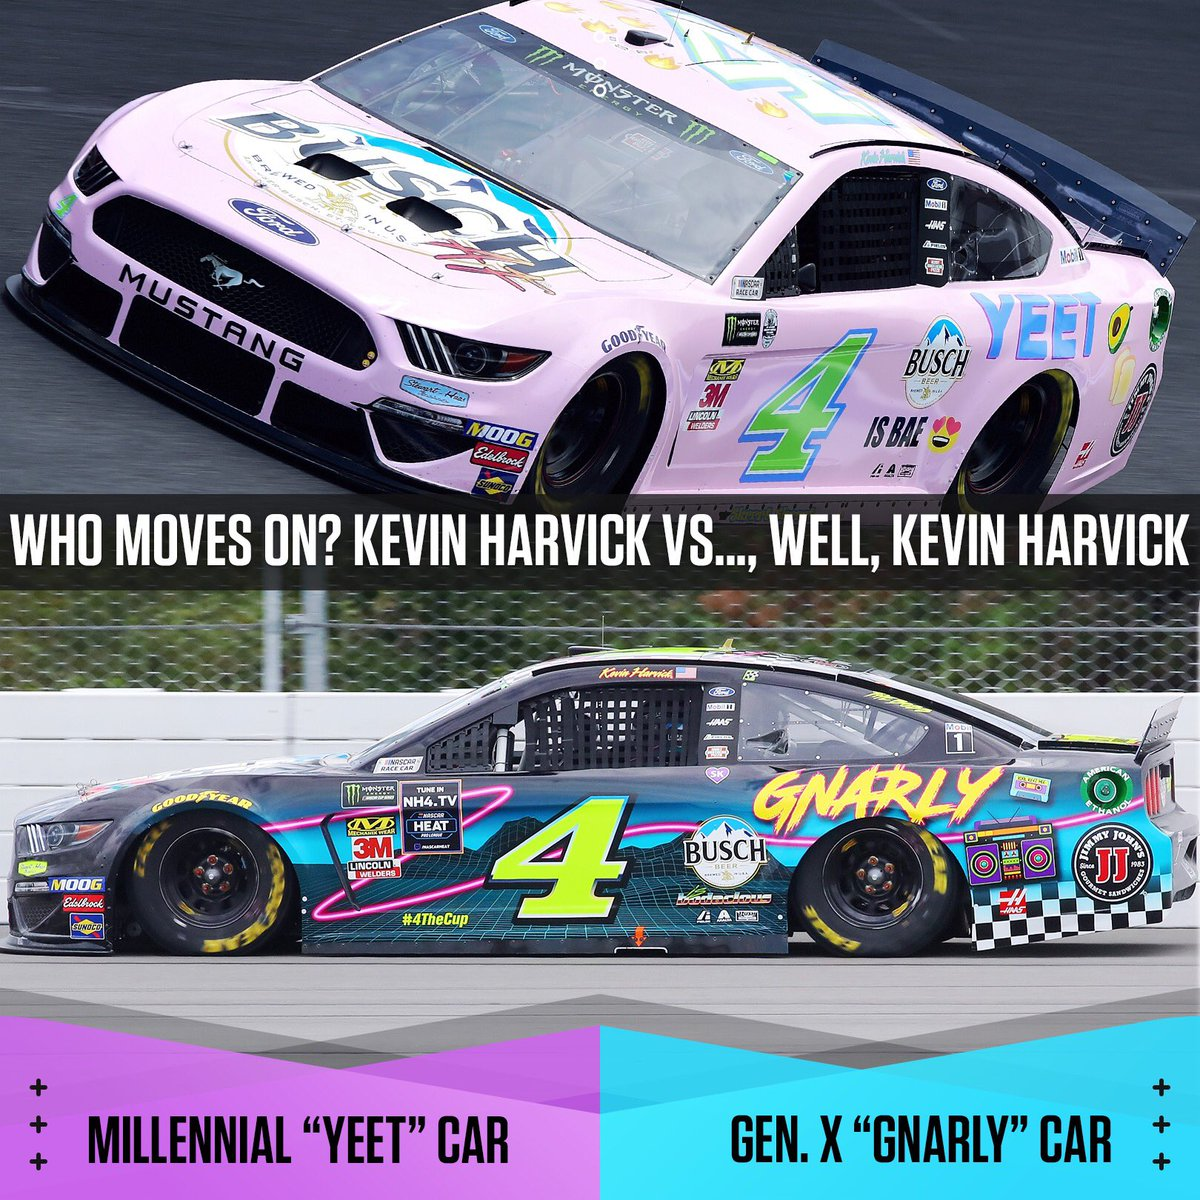 Nascar On Nbc On Twitter Next Matchup Millennial Car Vs Gen X Will Kevinharvick Yeet His Way Into The Quarterfinals Or Will The Gnarly Car Send The Pink Ride Home With A Top luxury cars cars sports cars cute cars pink car lamborghini cars dream cars sports car luxury. millennial car vs gen x will